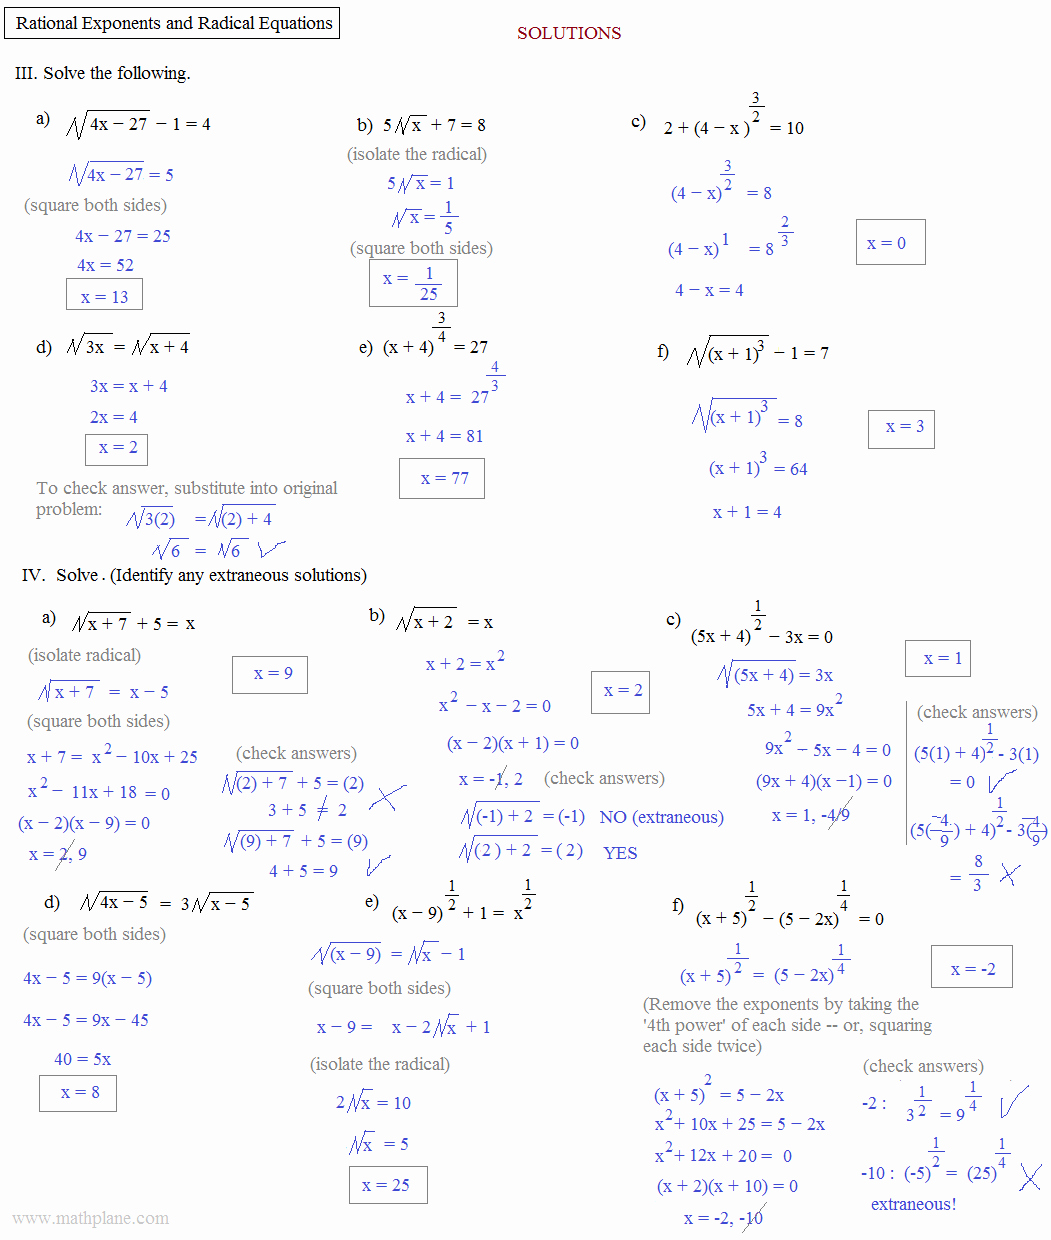 Radicals and Rational Exponents Worksheet Elegant Math Plane Rational Exponents and Radical Equations